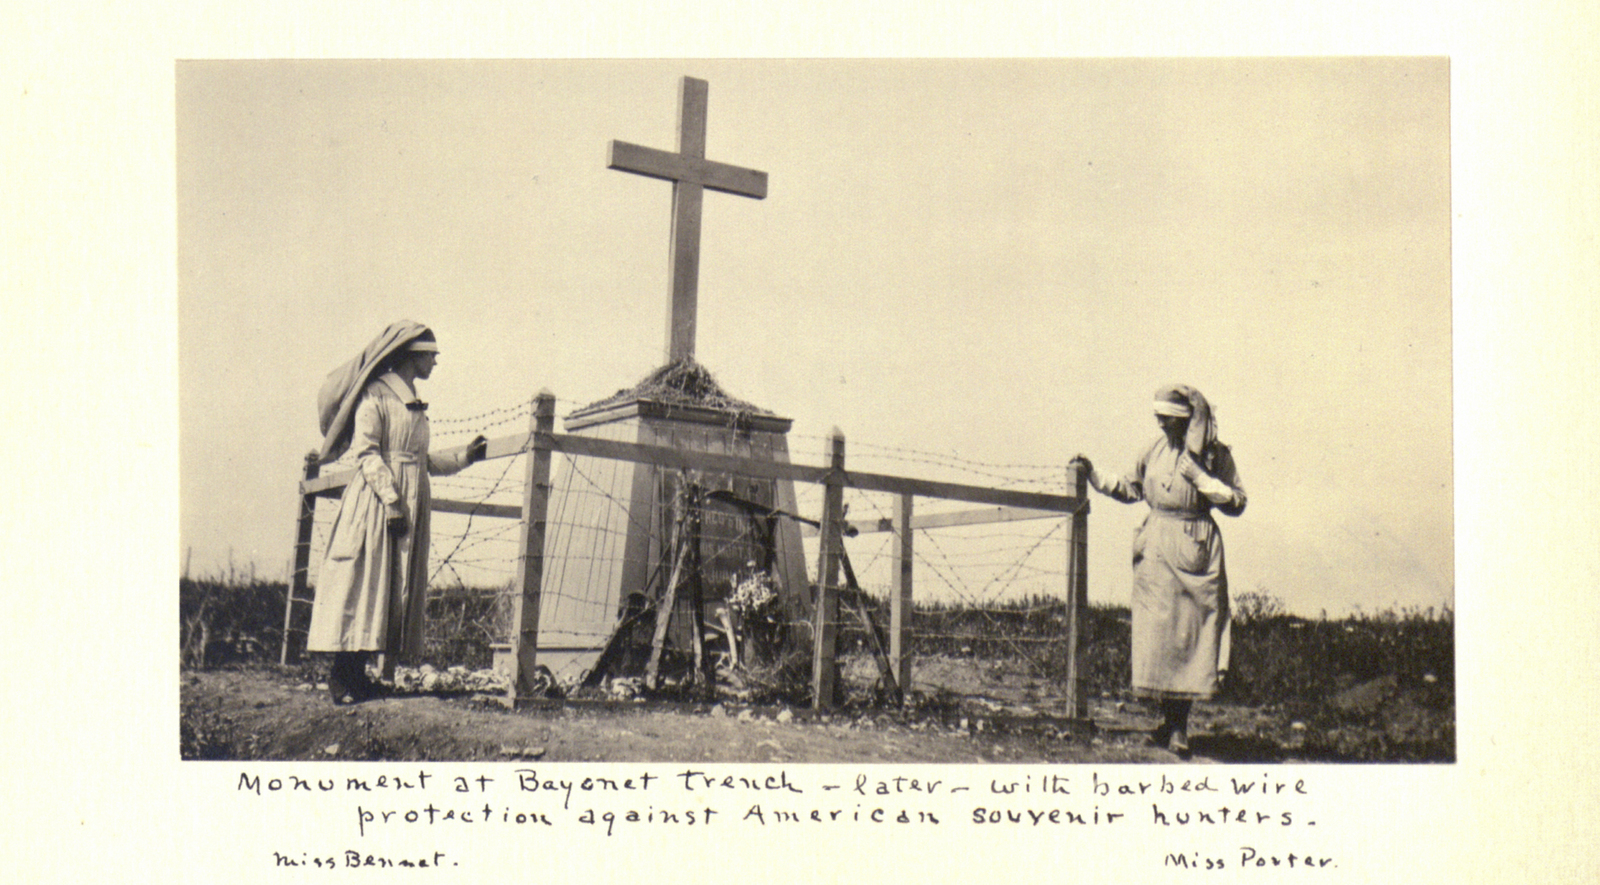 Monument at Bayonet Trench